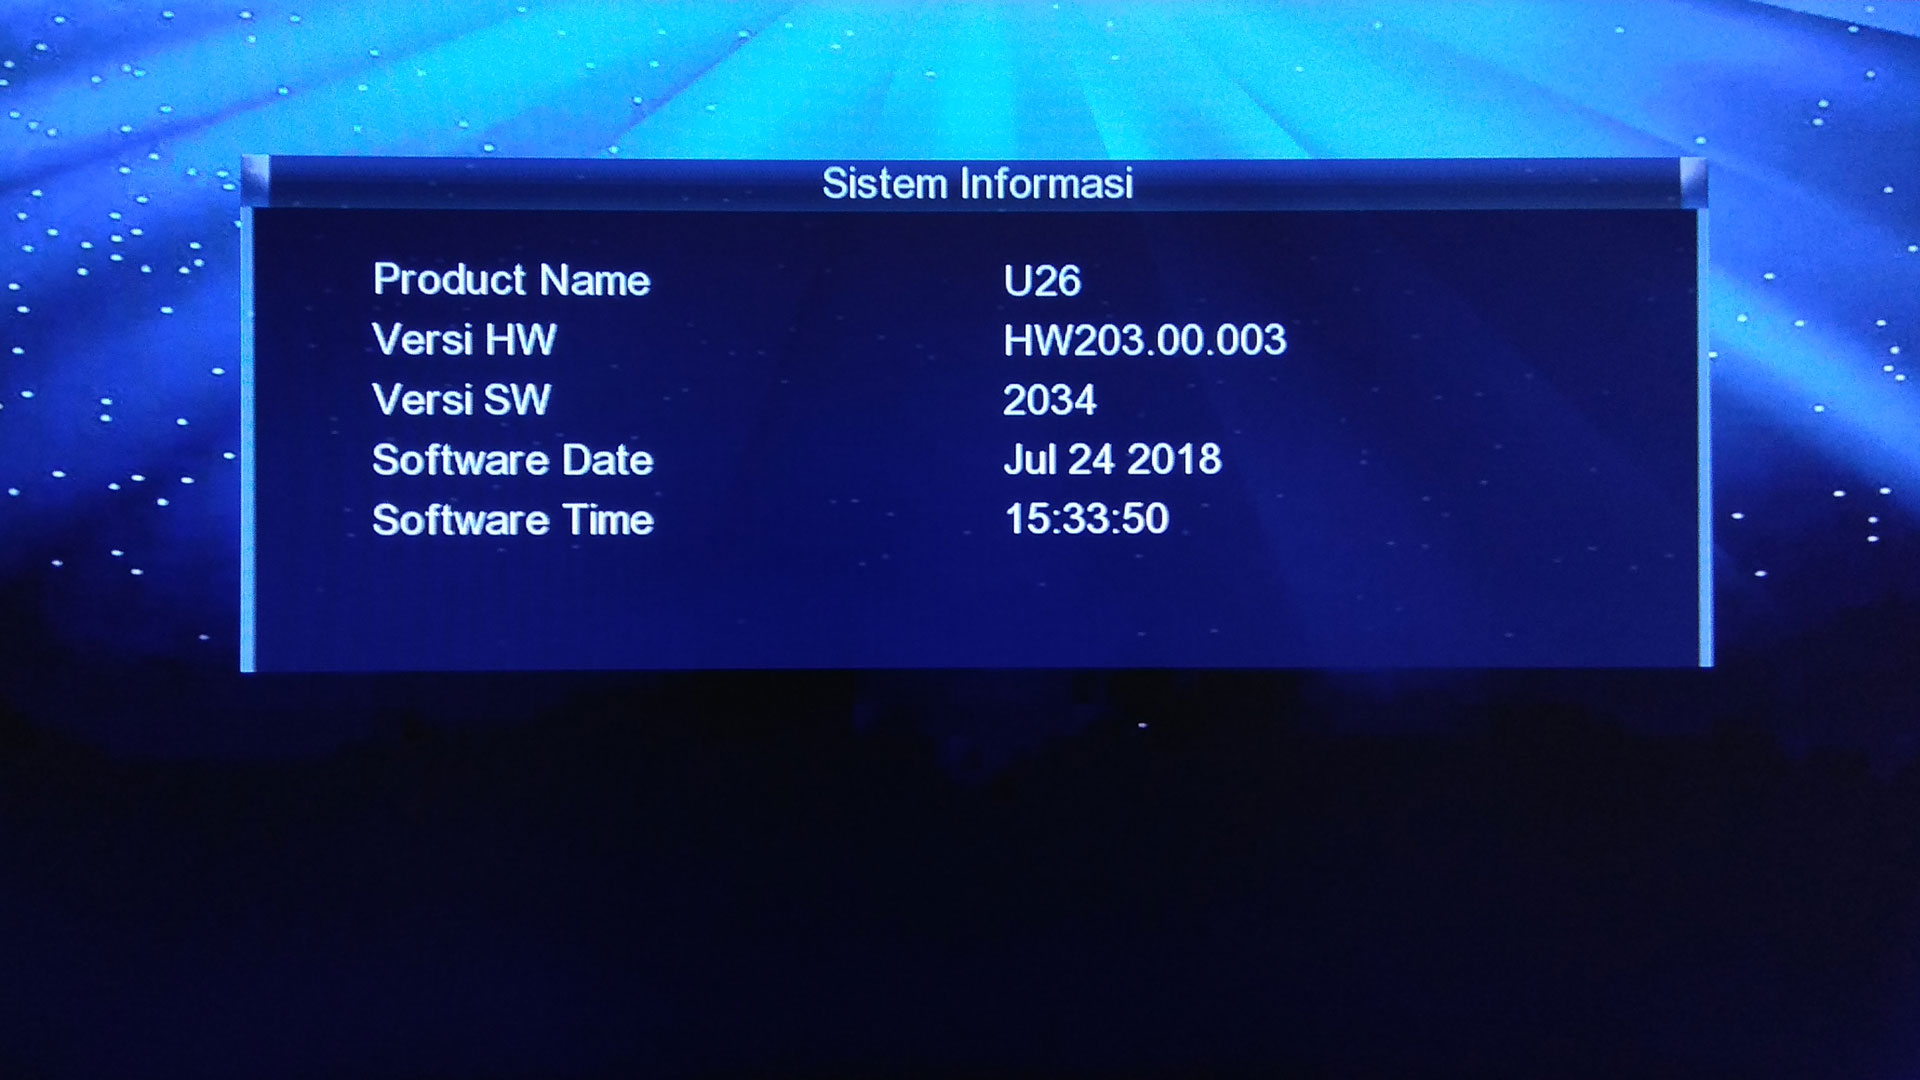 Download SW Optus HD Terbaru Firmware Upgrade Receiver Parabola